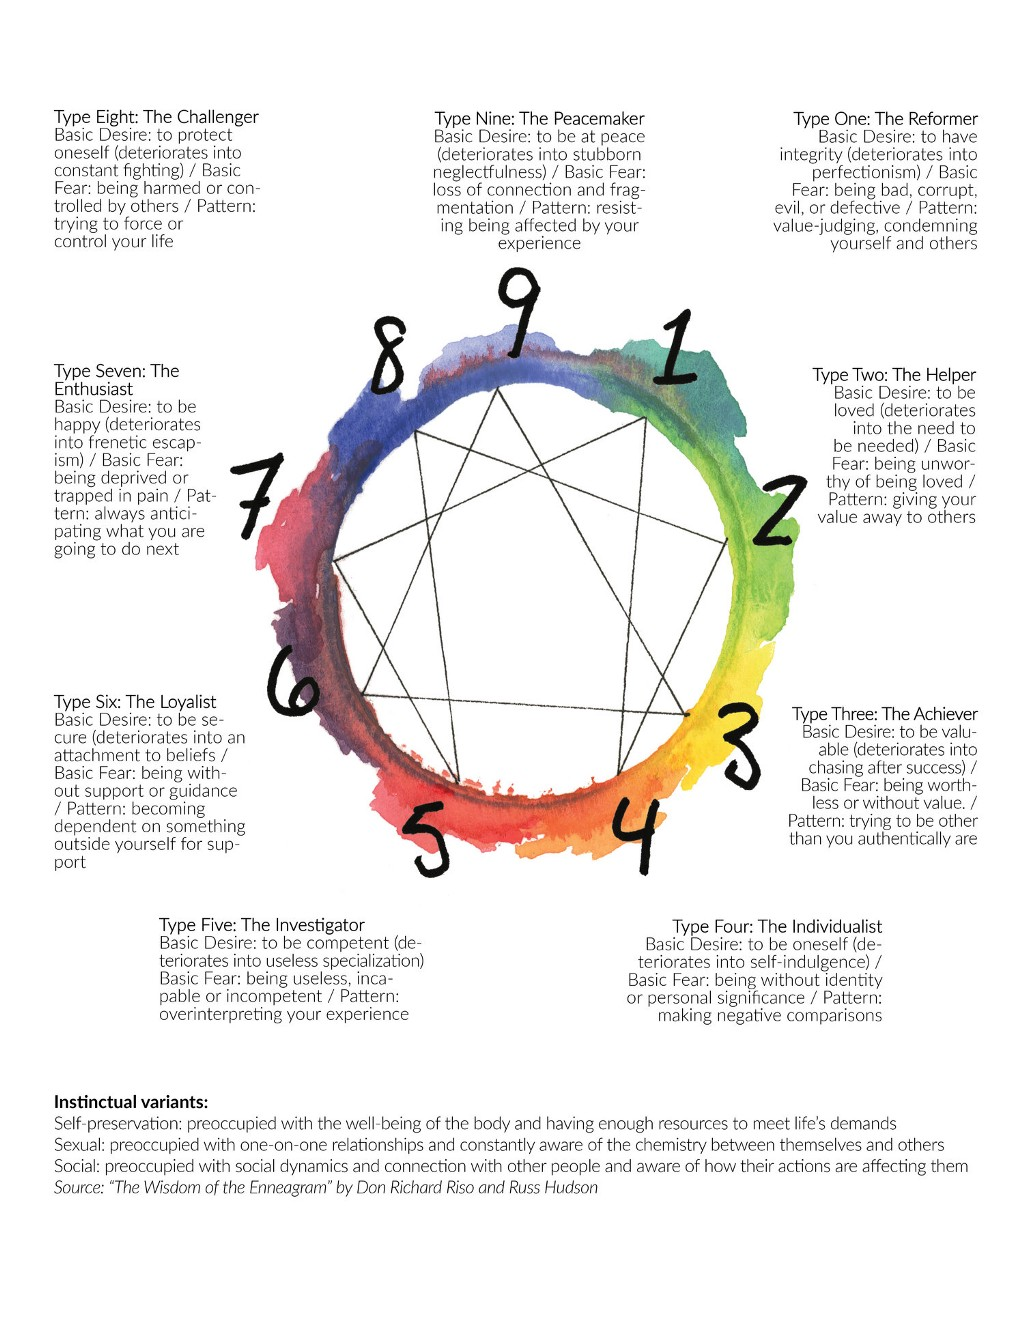 The 9 basic personality types of the Enneagram.